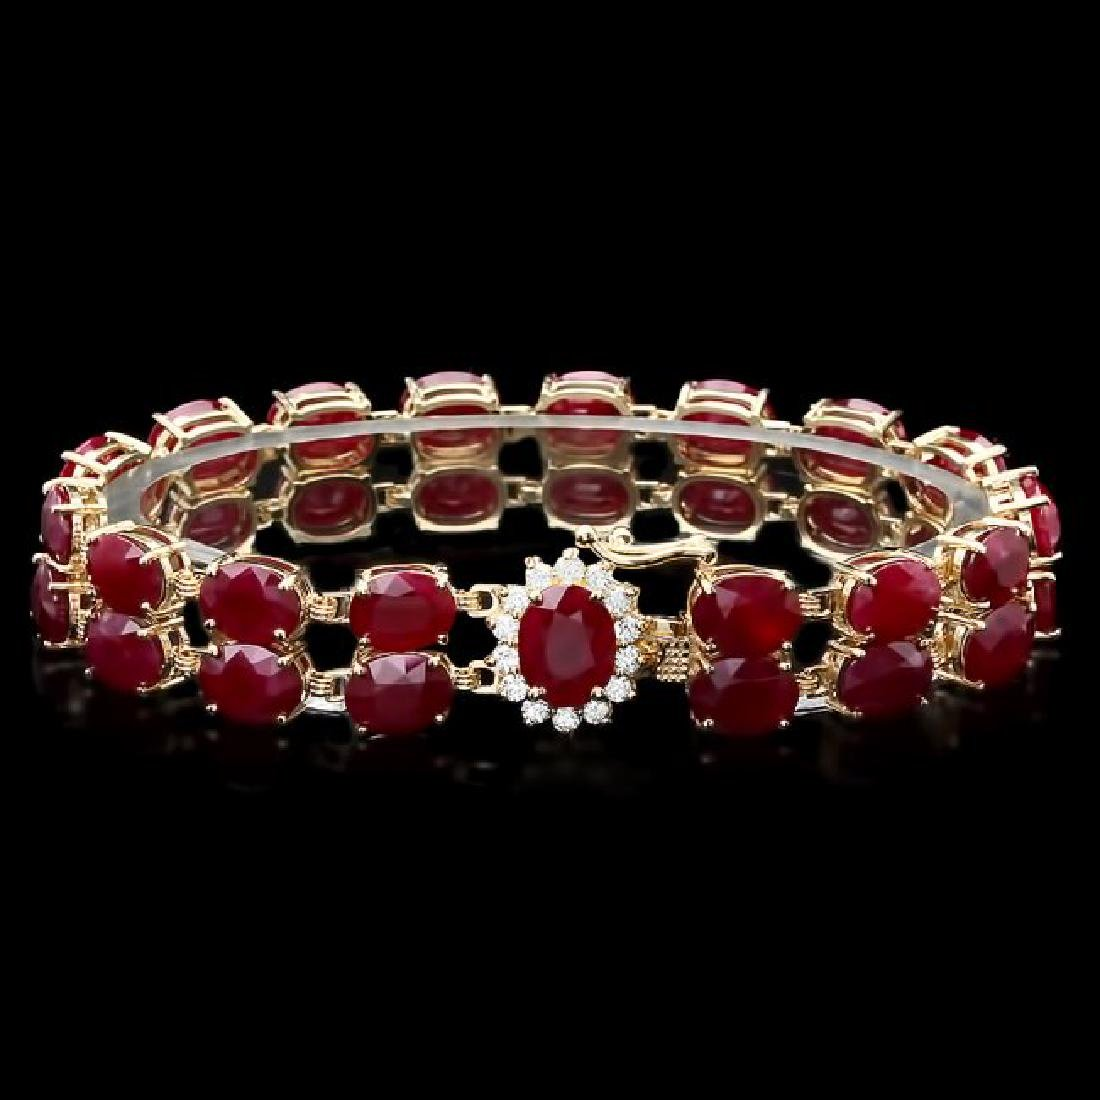 14k Gold 53.00ct Ruby 0.50ct Diamond Bracelet